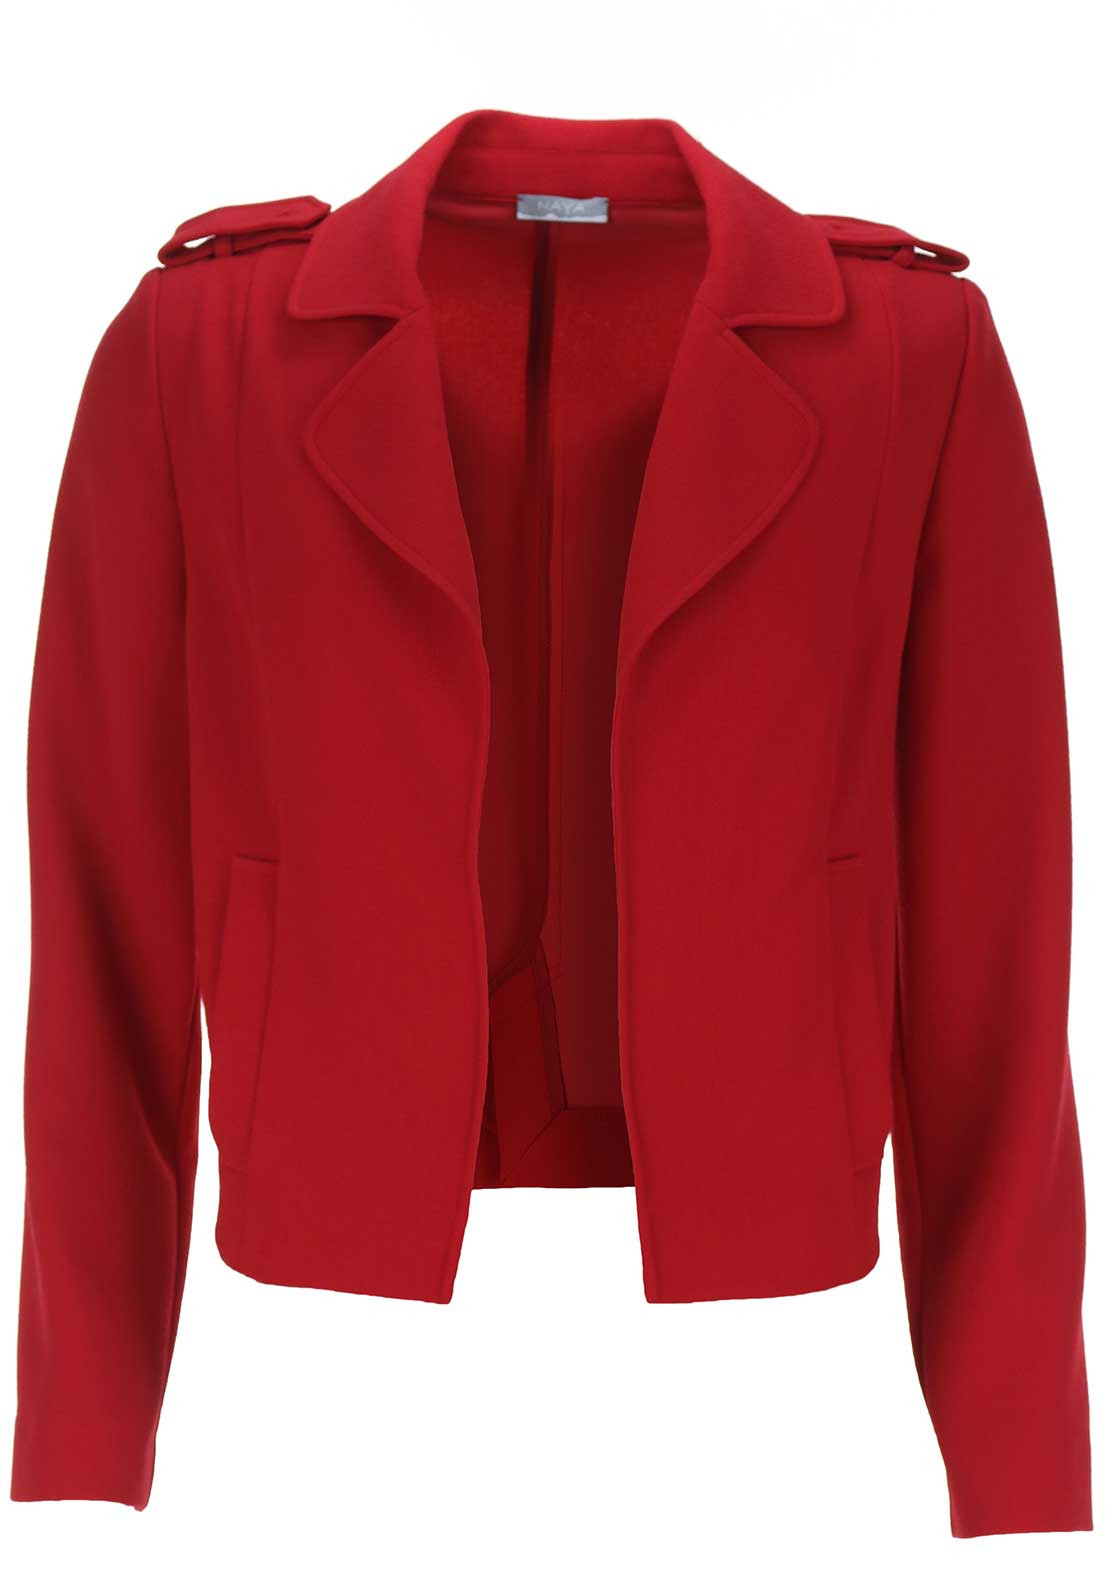 Naya Crepe Blazer Jacket, Red